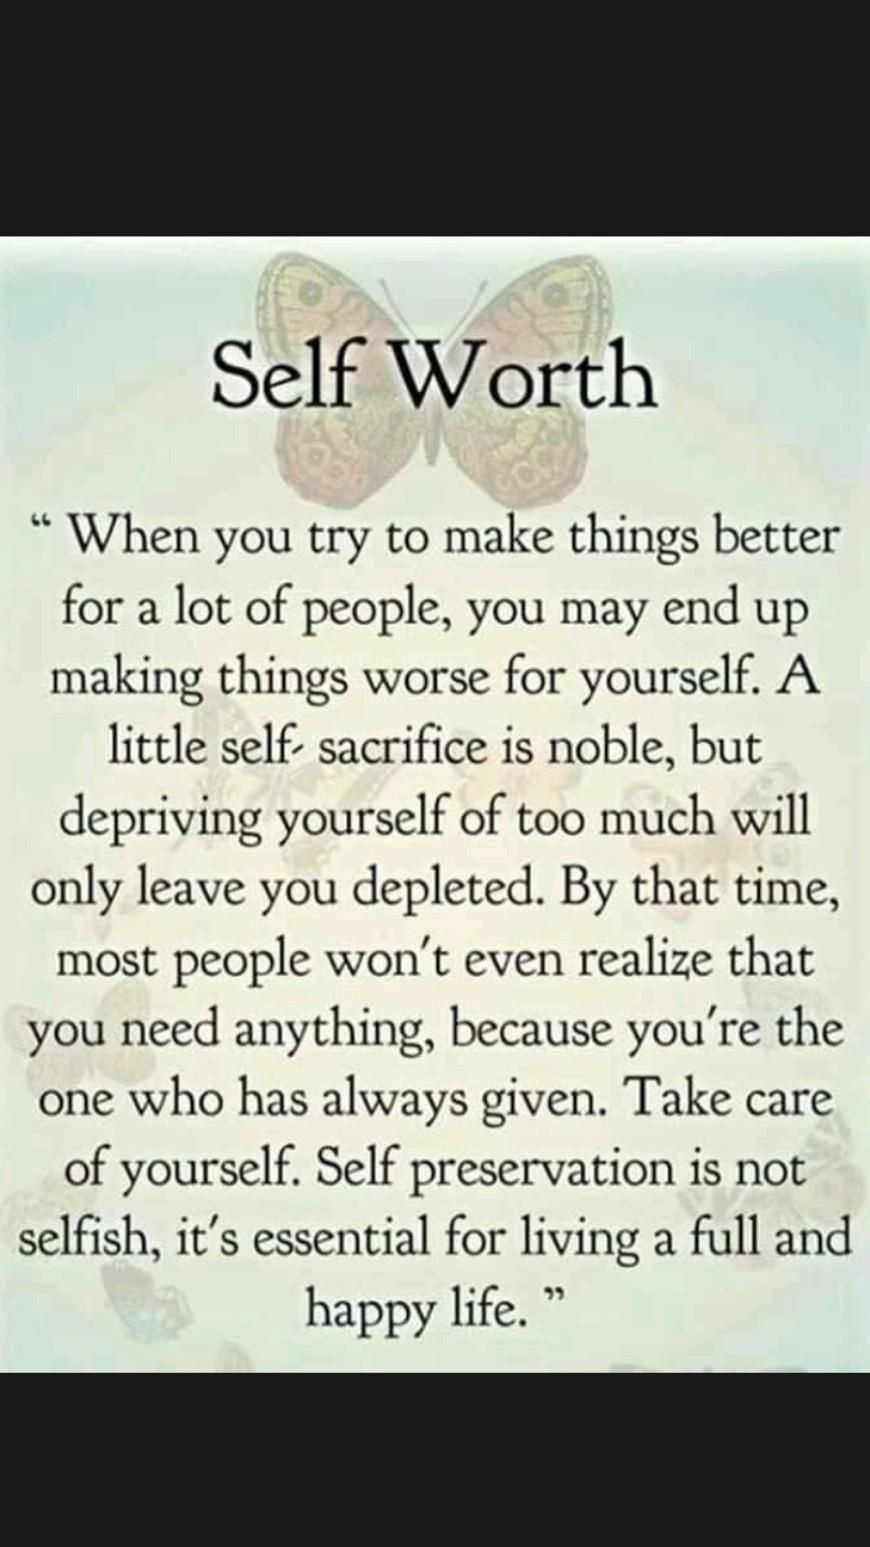 self worth is so important..its not selfish to put urslef 1st 💯u can't pour from n empty cup💯👍❤